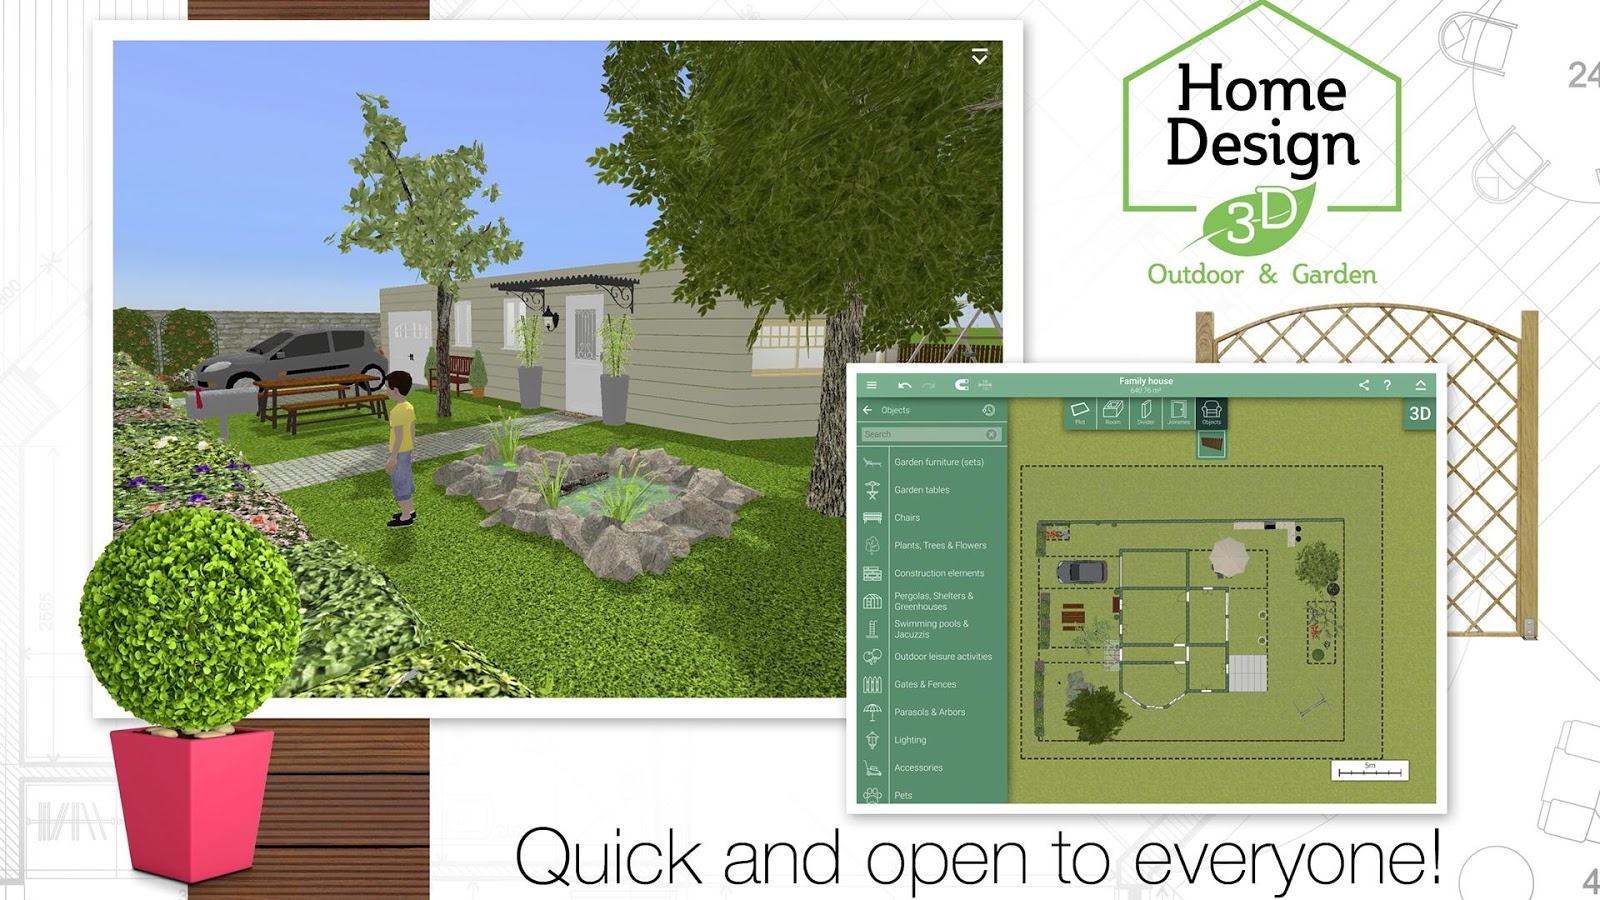 Home design 3d outdoor garden android apps on google play for Home and garden design